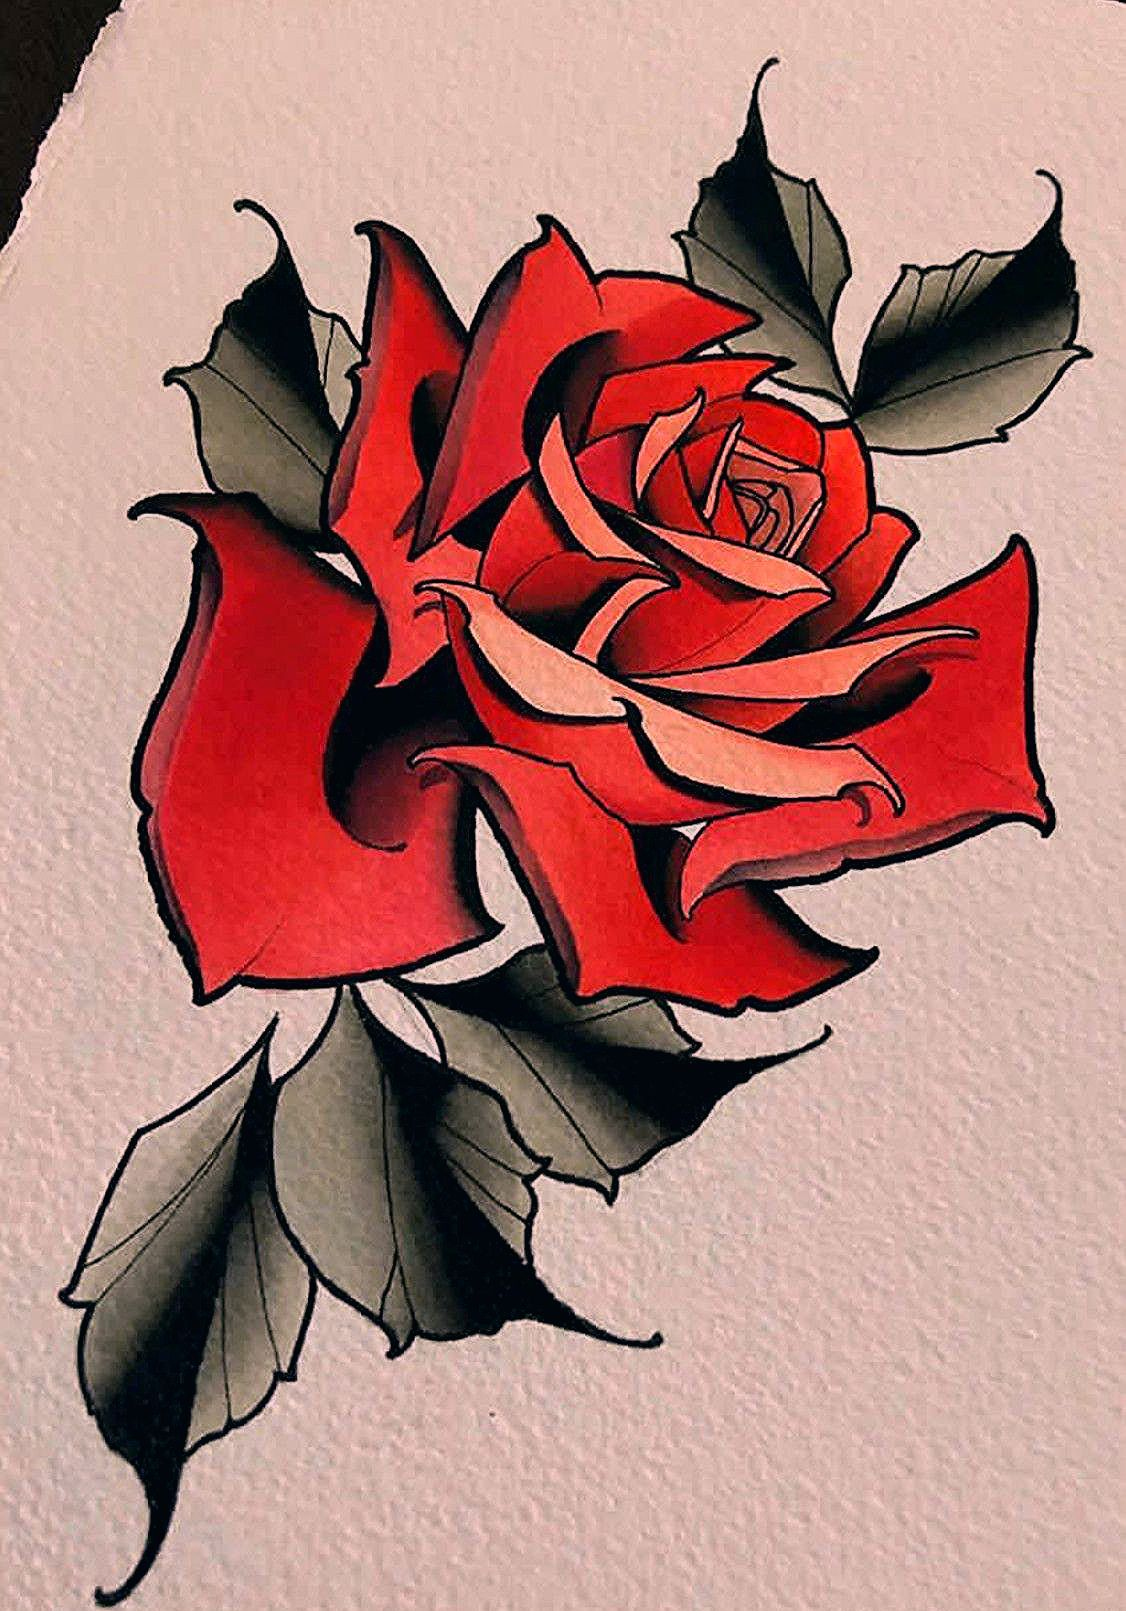 Neotraditional Rose Tattoo : neotraditional, tattoo, Jingyang, Hundred, Eighteen, Traditional, Tattoos,, Roses,, Roses